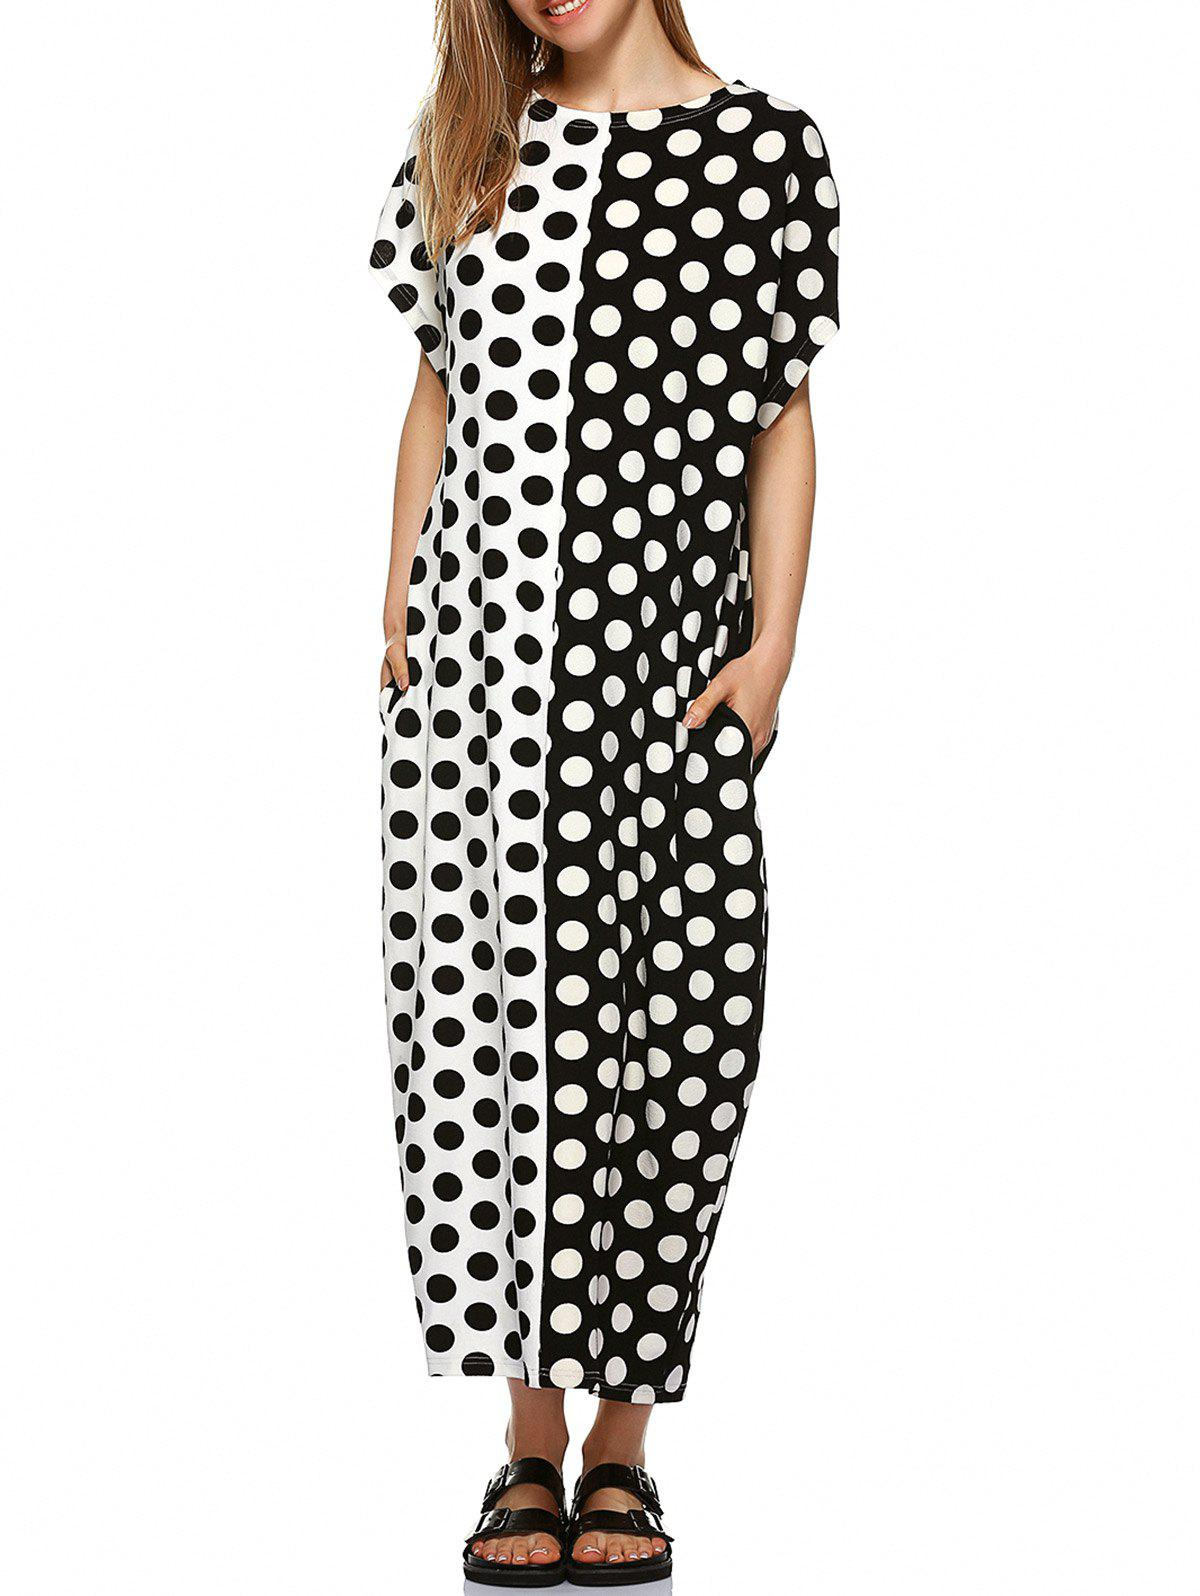 Polka Dot Print Hit Color Baggy Dress - WHITE/BLACK XL